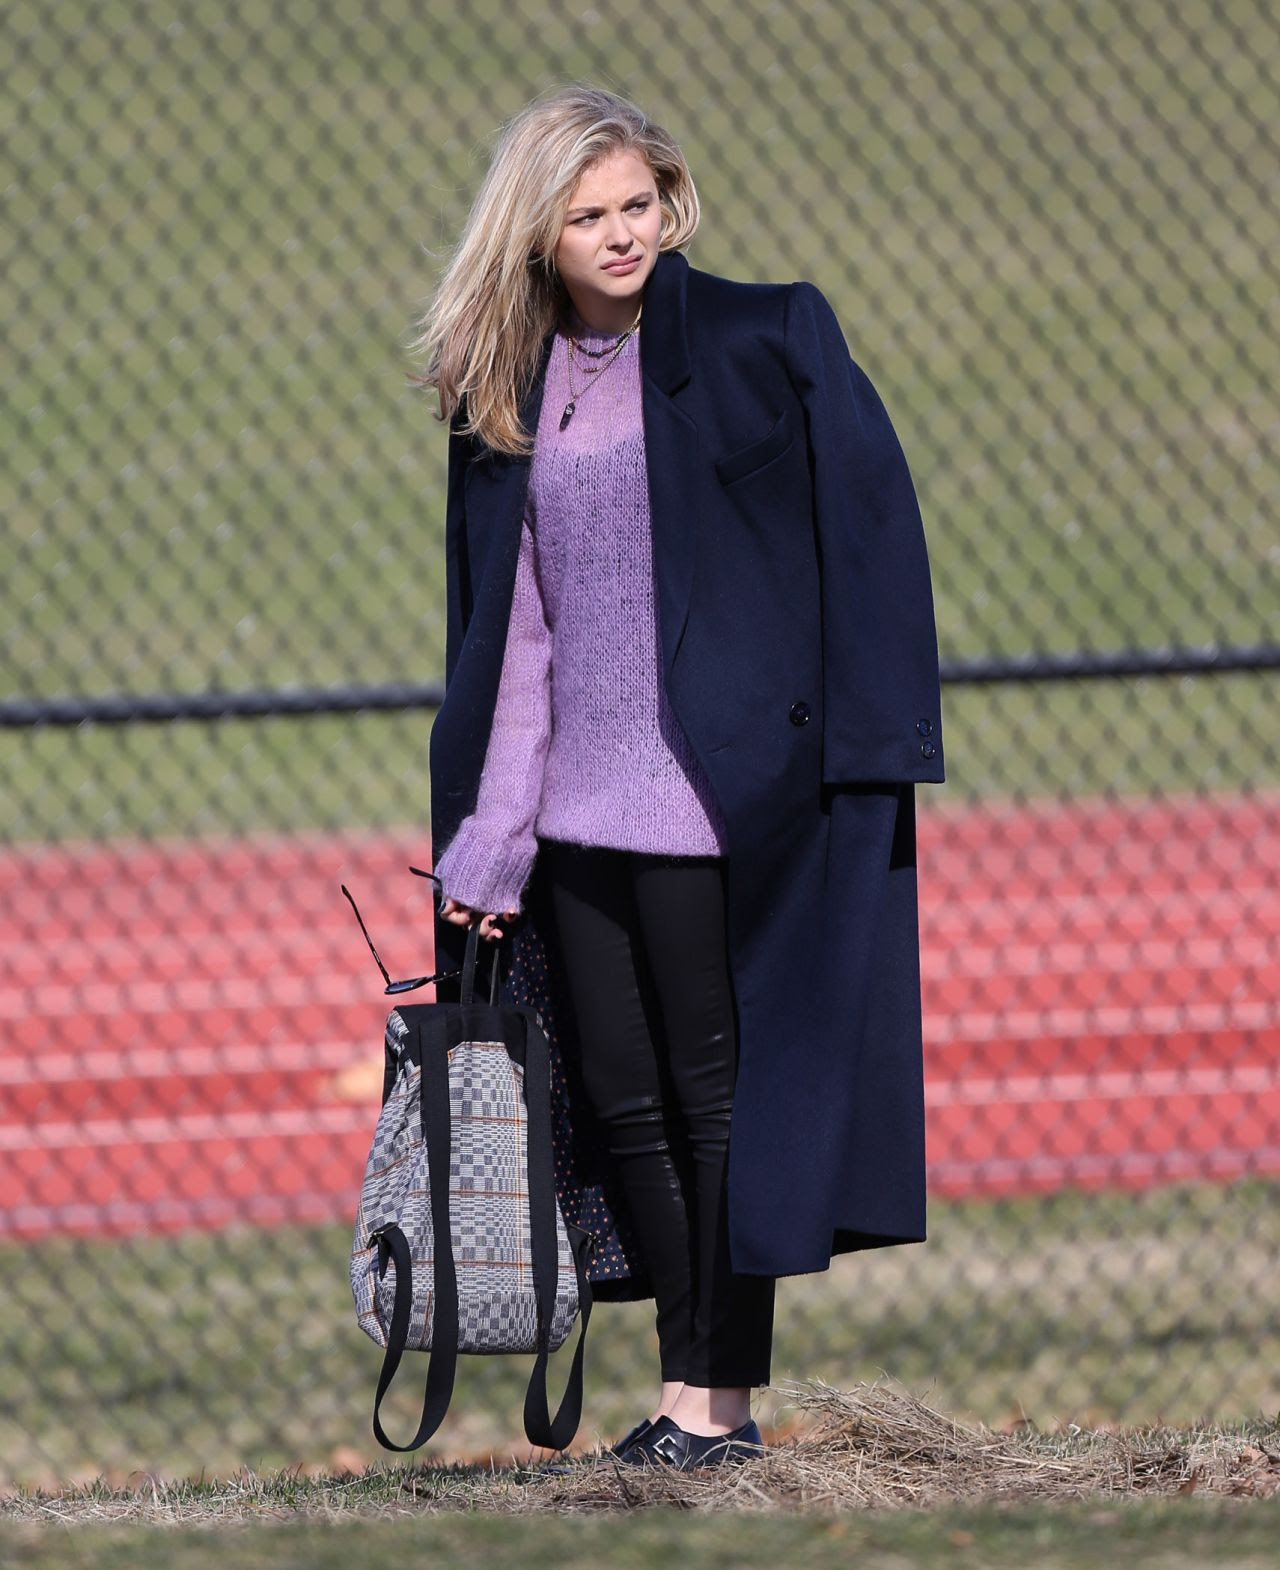 http://celebmafia.com/wp-content/uploads/2015/04/chloe-moretz-set-of-november-criminals-in-providence-rhode-island-april-2015_15.jpg